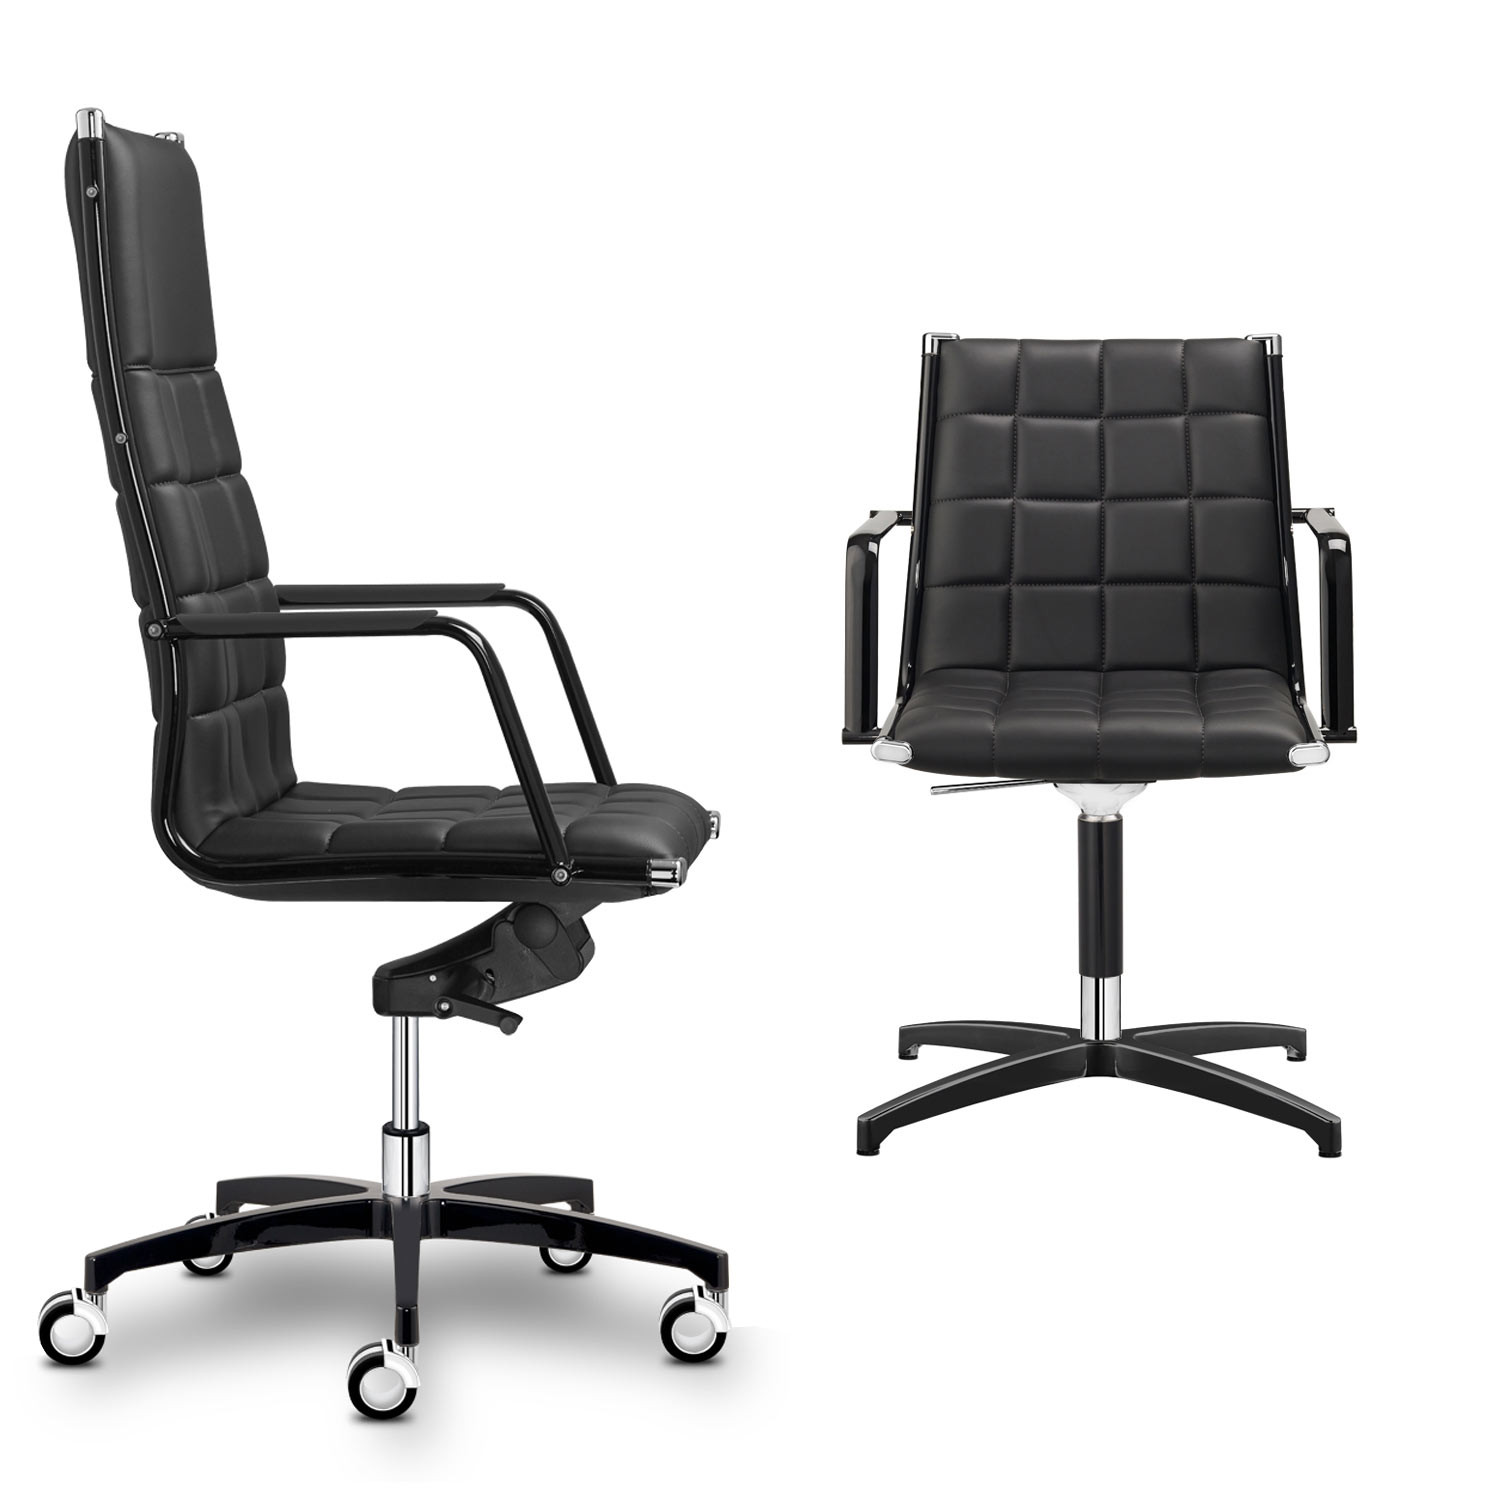 Vega S Executive Chairs